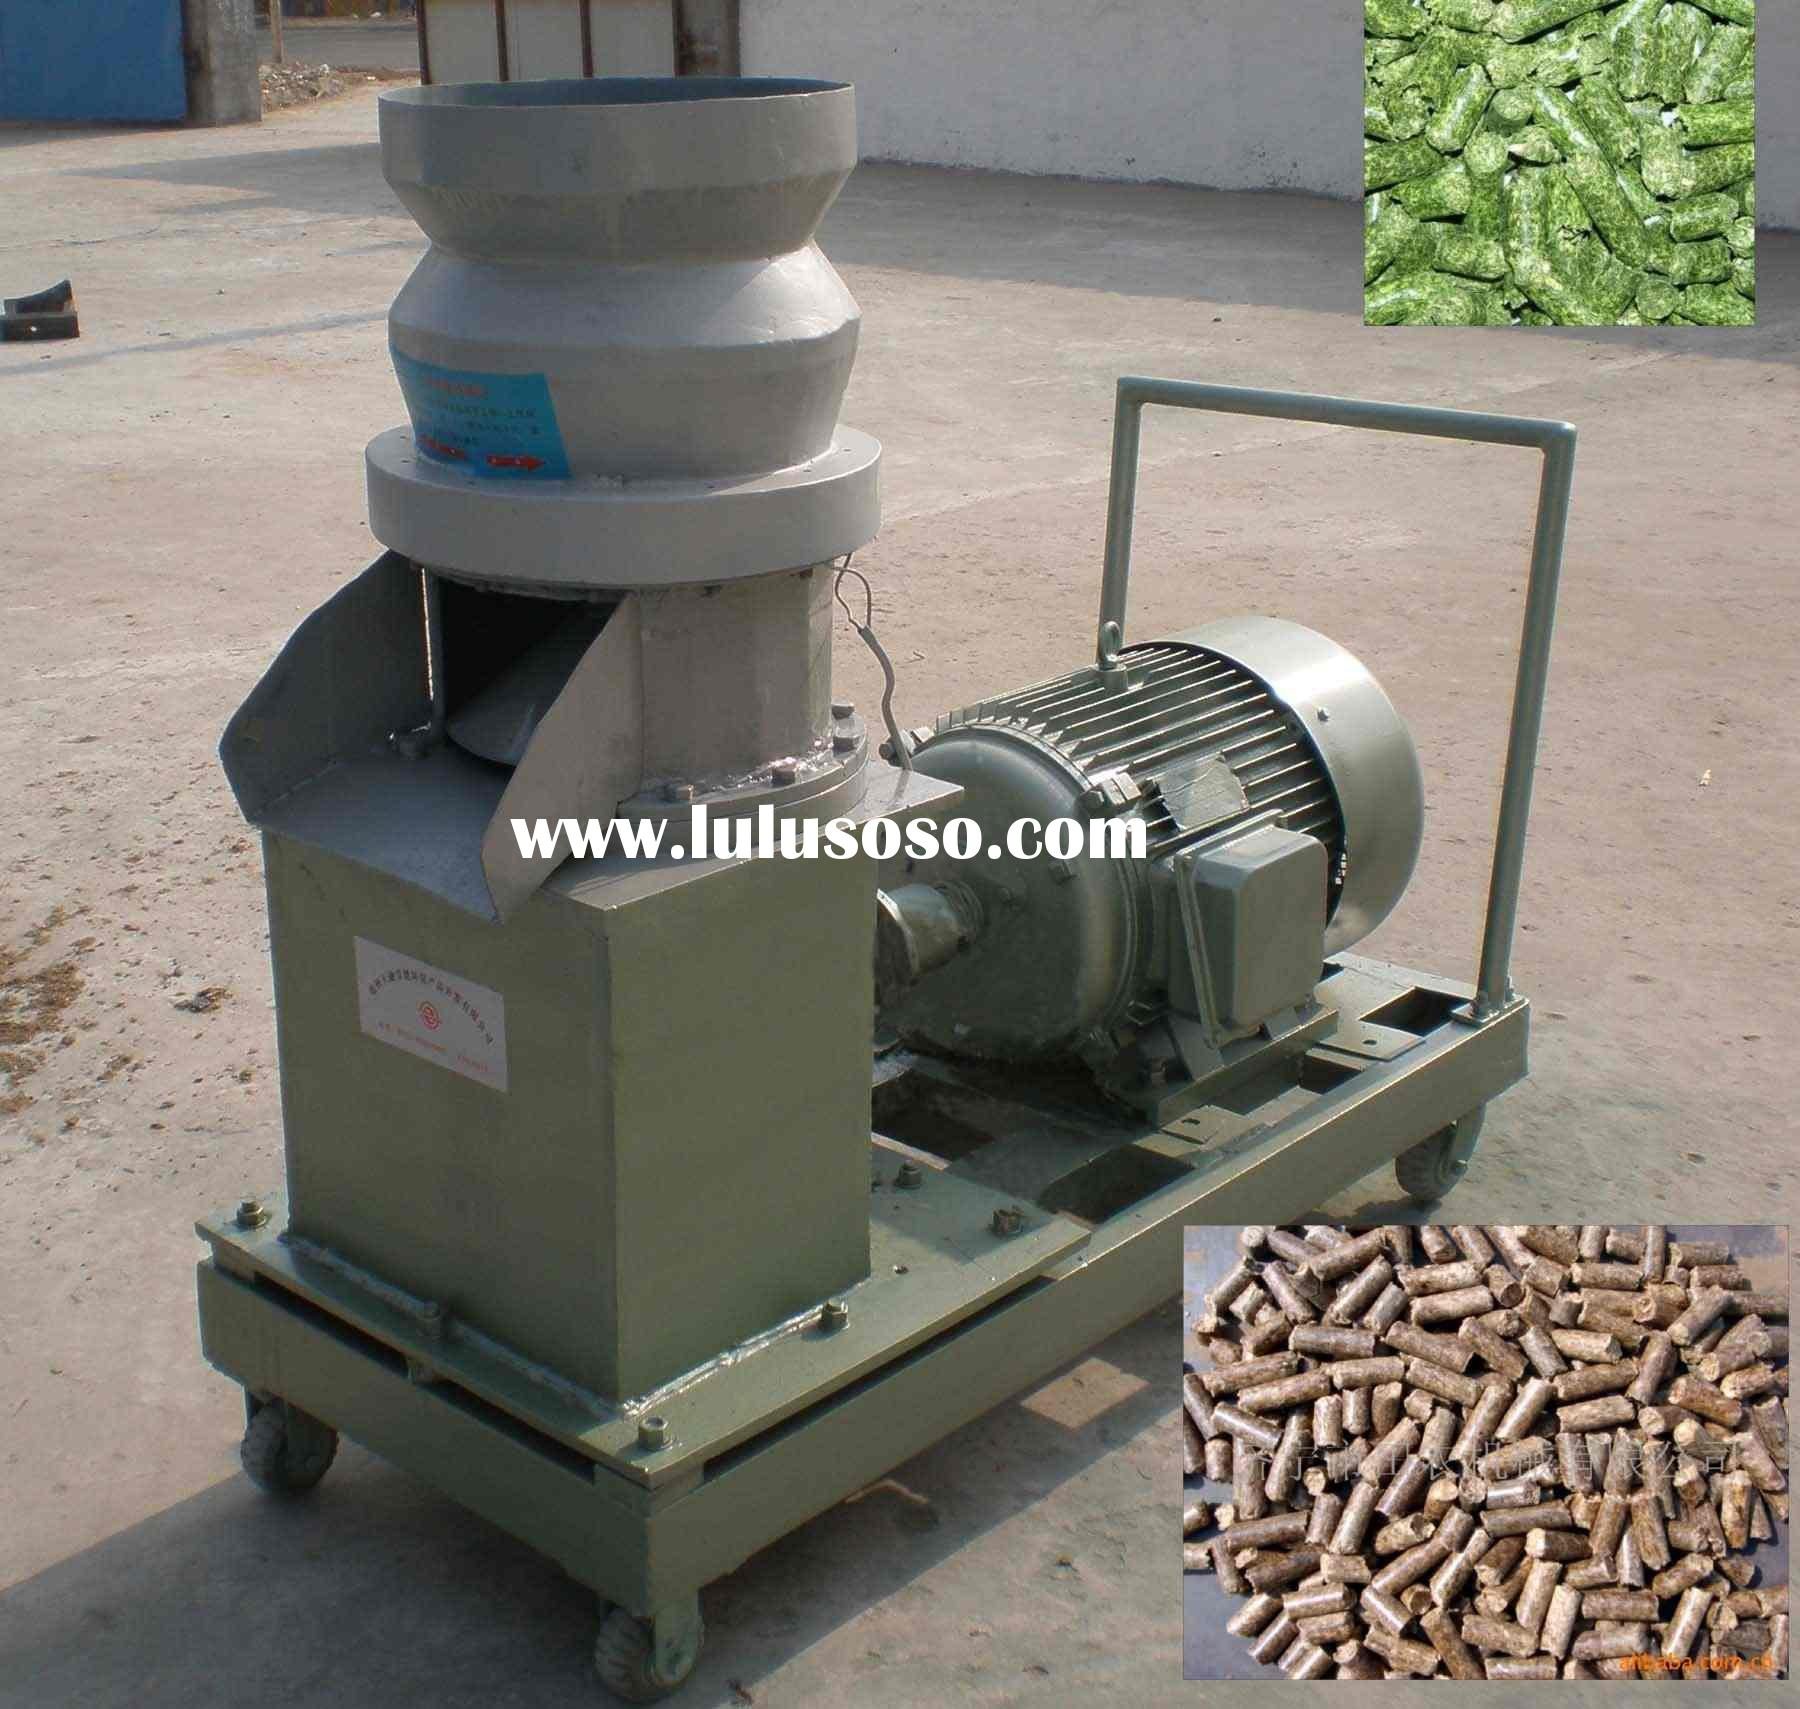 9PK-200 Pellet press can produce pellet from sawdust,atraw,or animal's waste